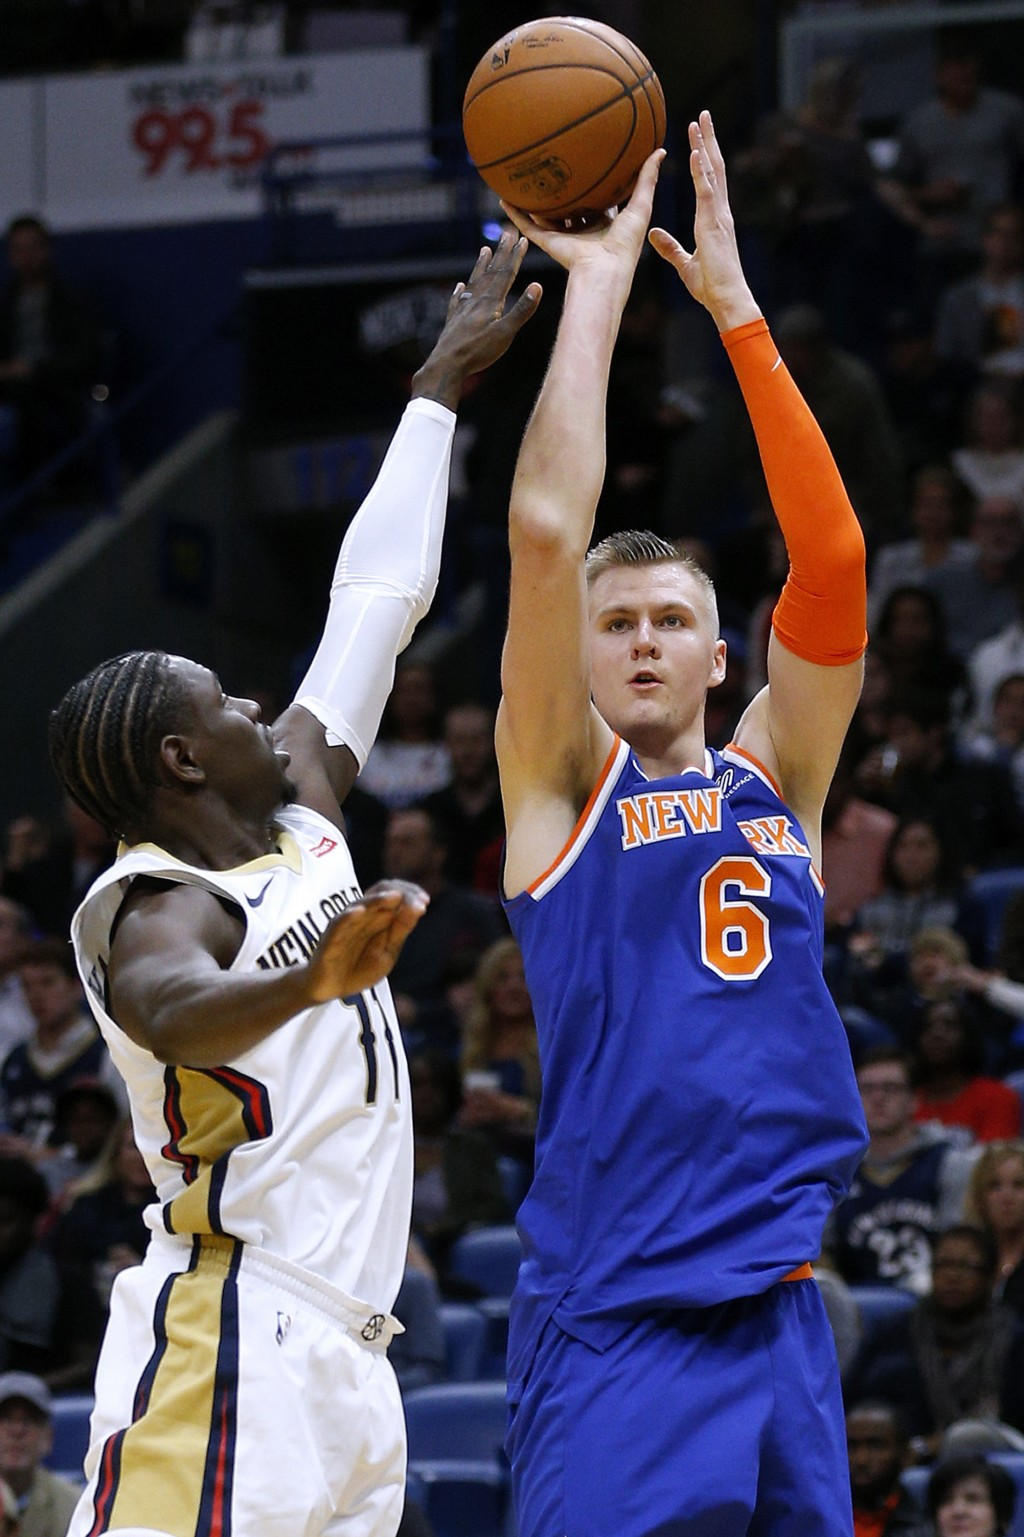 New York Knicks forward Kristaps Porzingis (6) shoots over New Orleans Pelicans guard Jrue Holiday (11) during the first half of an NBA basketball gam...